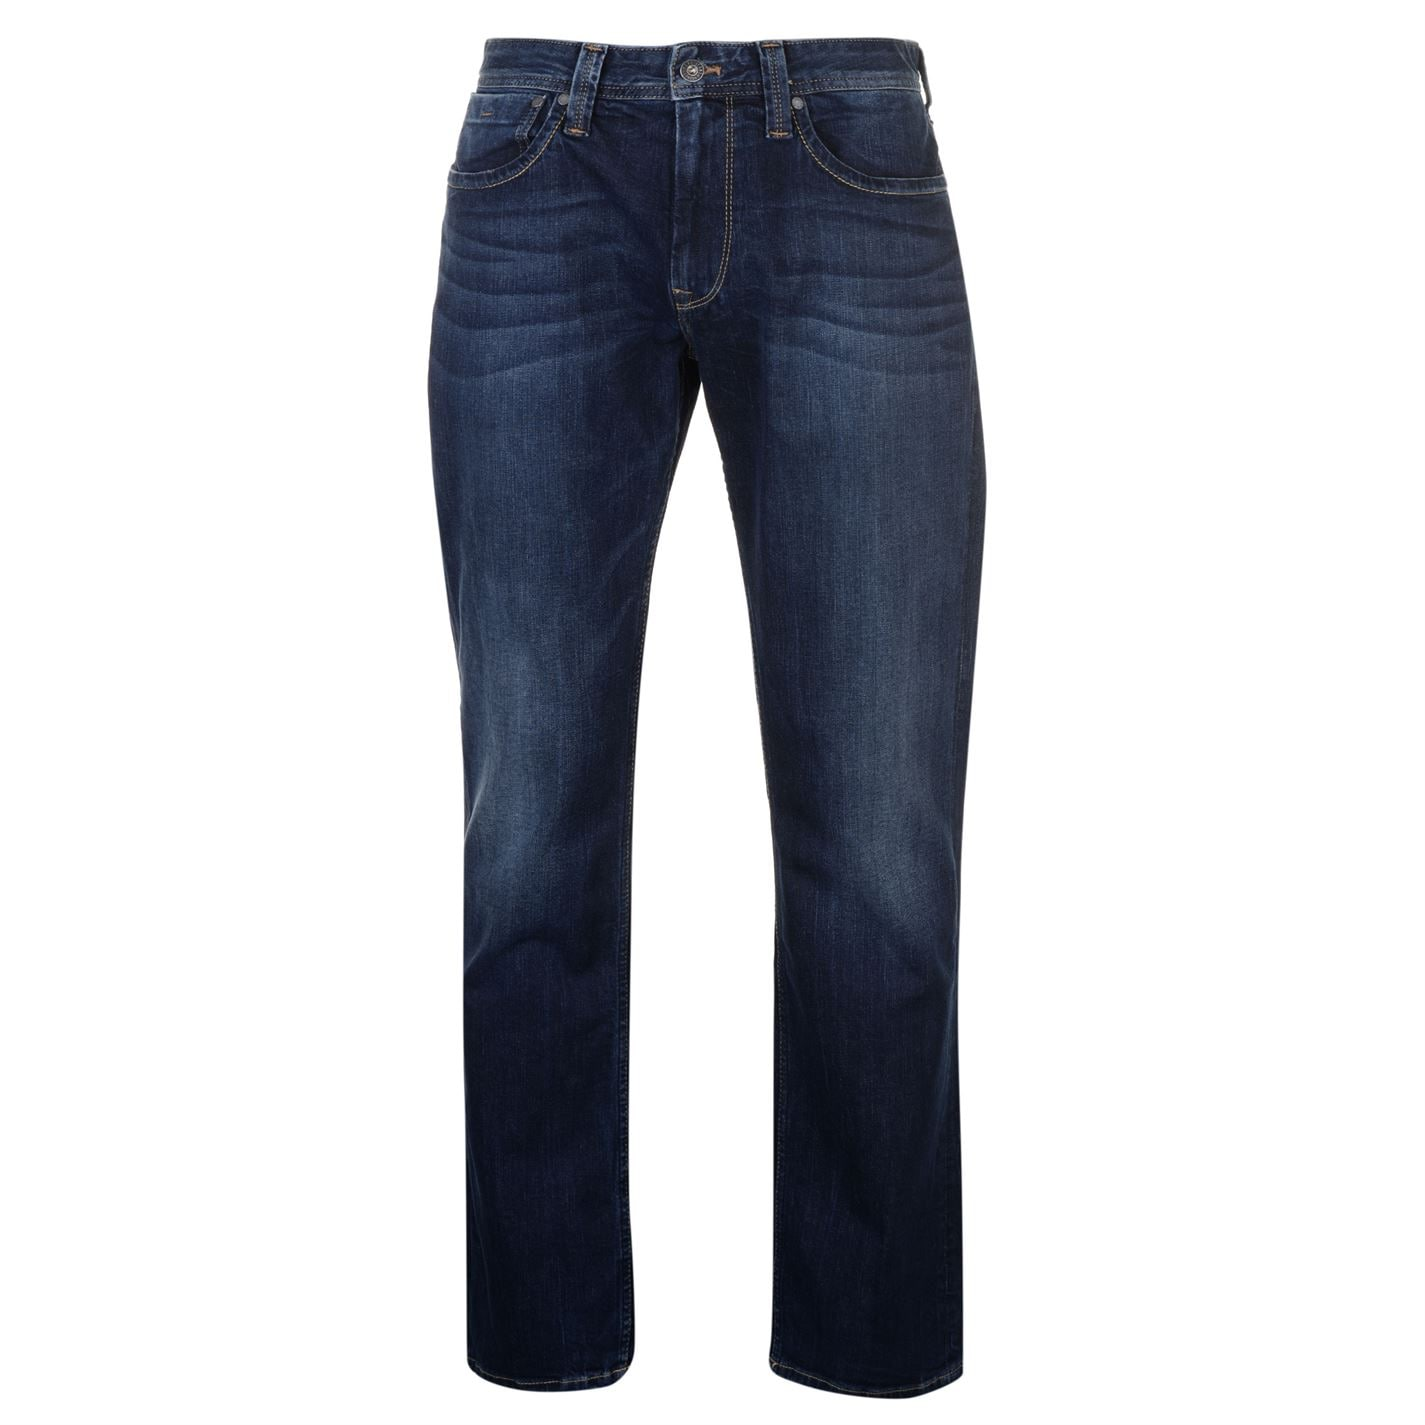 Mergi la Blugi Pepe Jeans Kingston Straight stretch inchis